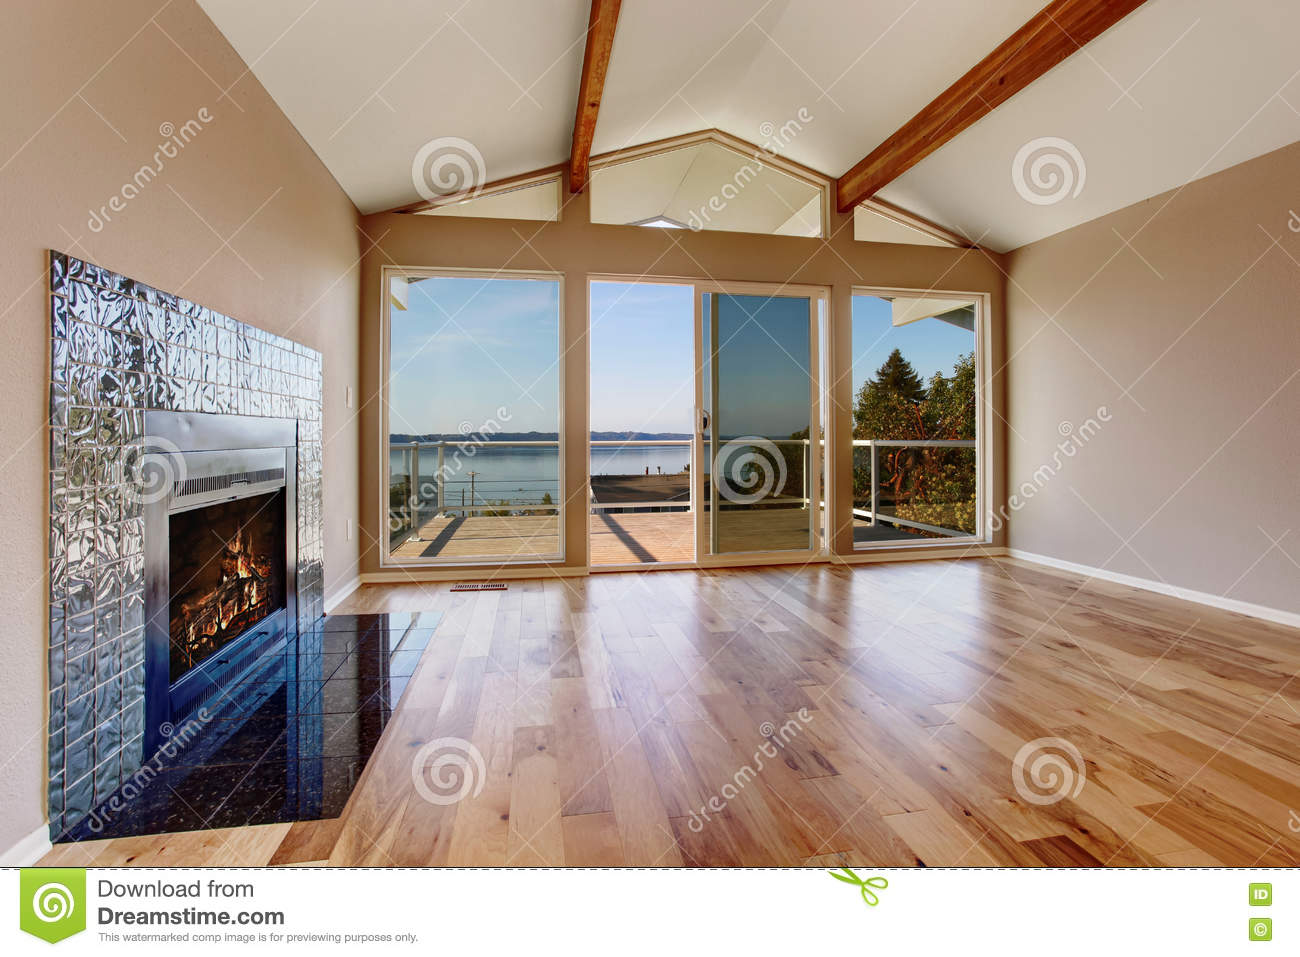 Empty Room Interior With Hardwood Floor Vaulted Ceiling And